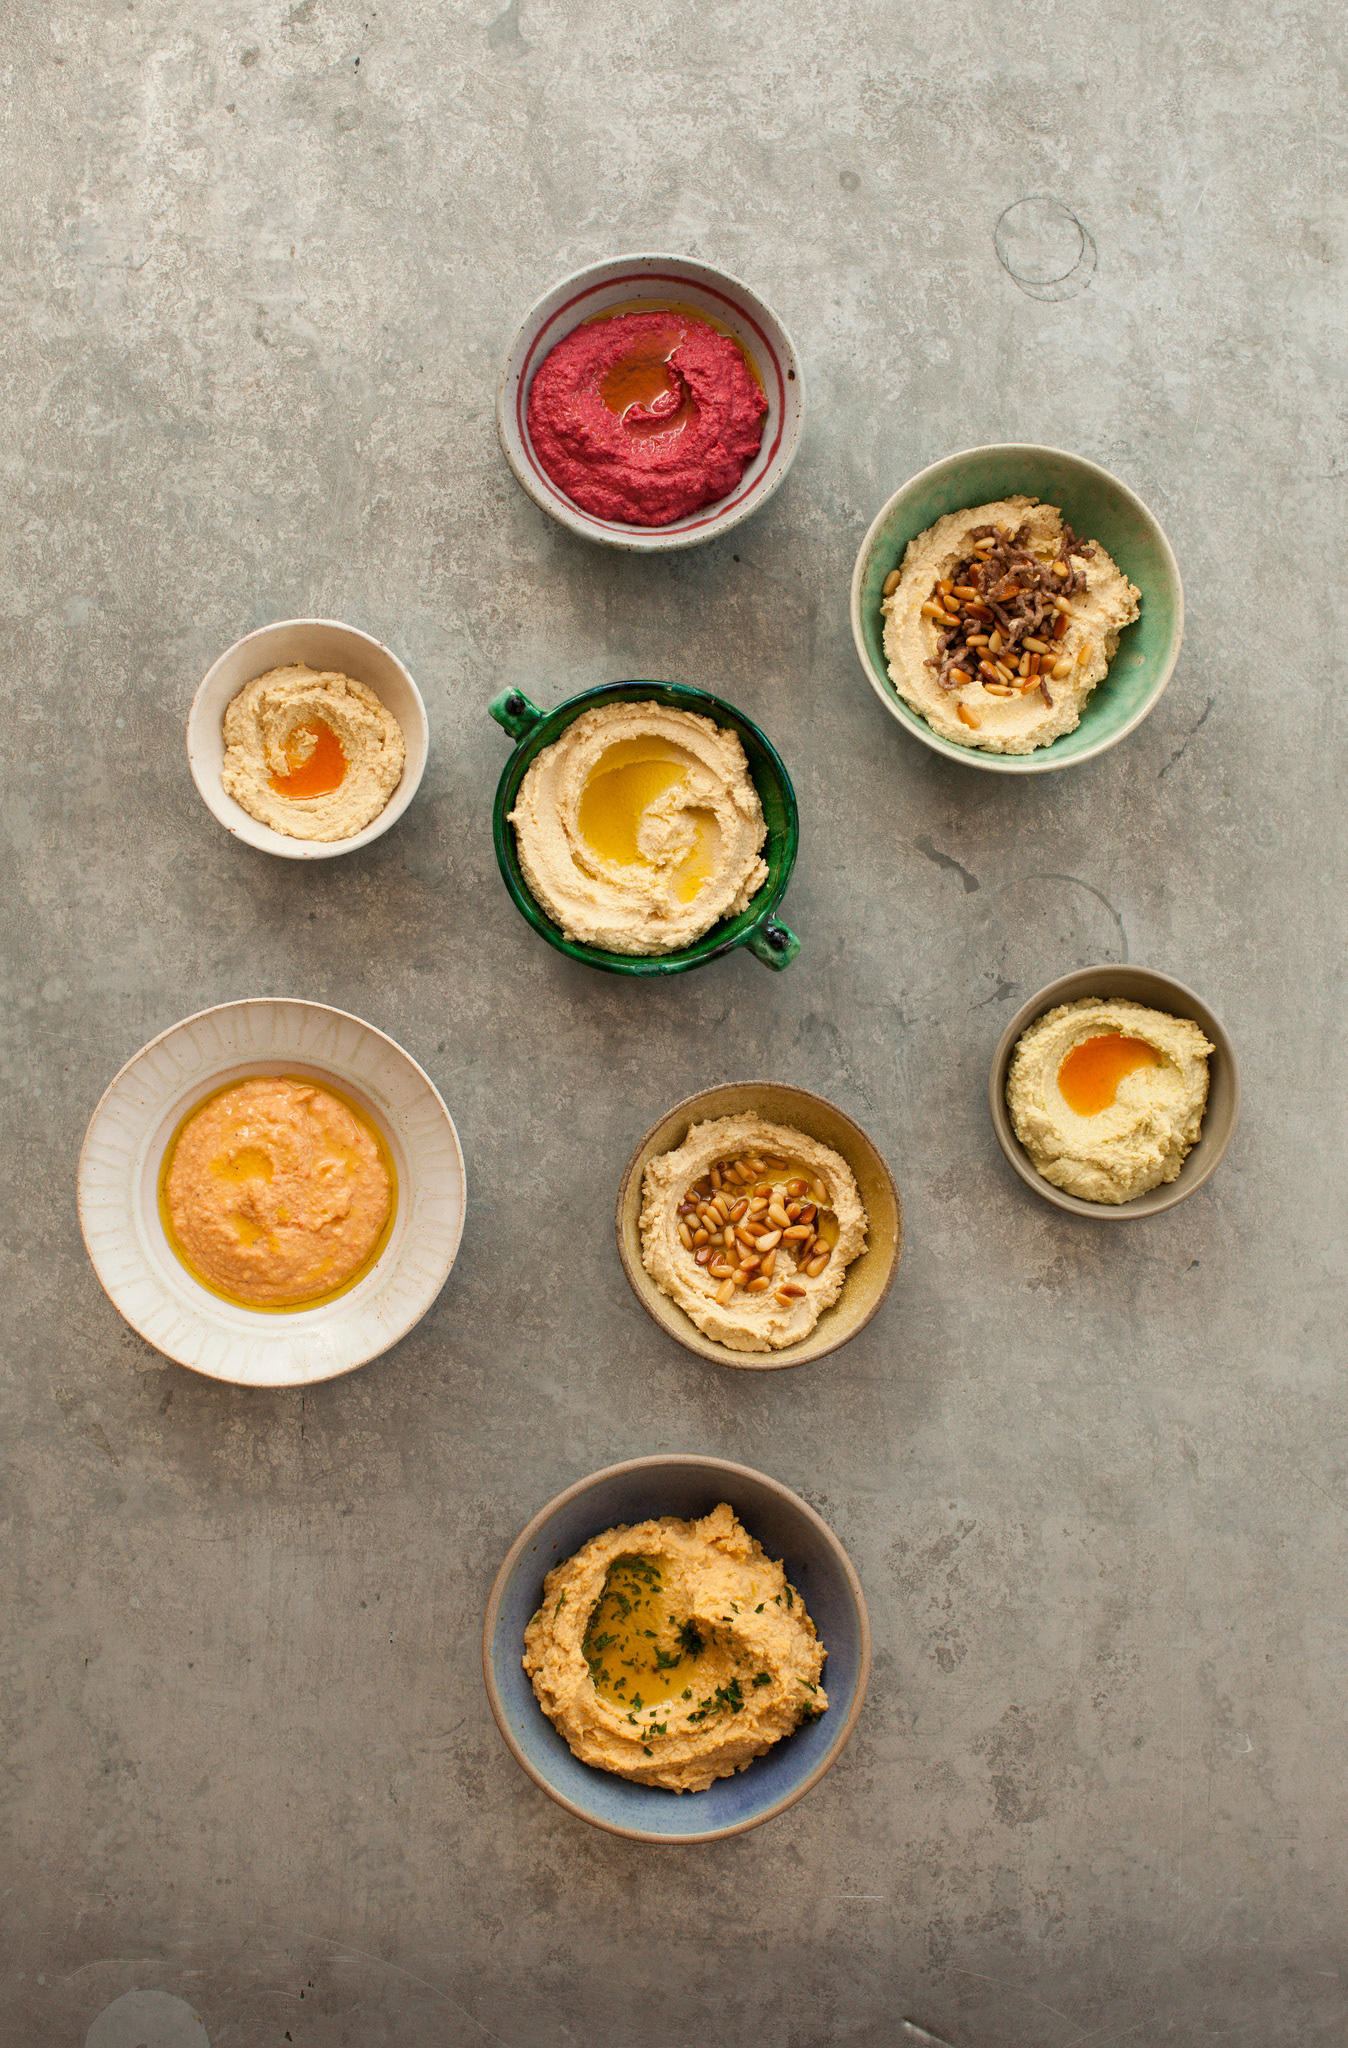 PHOTO Phaidon A Selection Of Hummus From The Lebanese Kitchen By Salma Hage